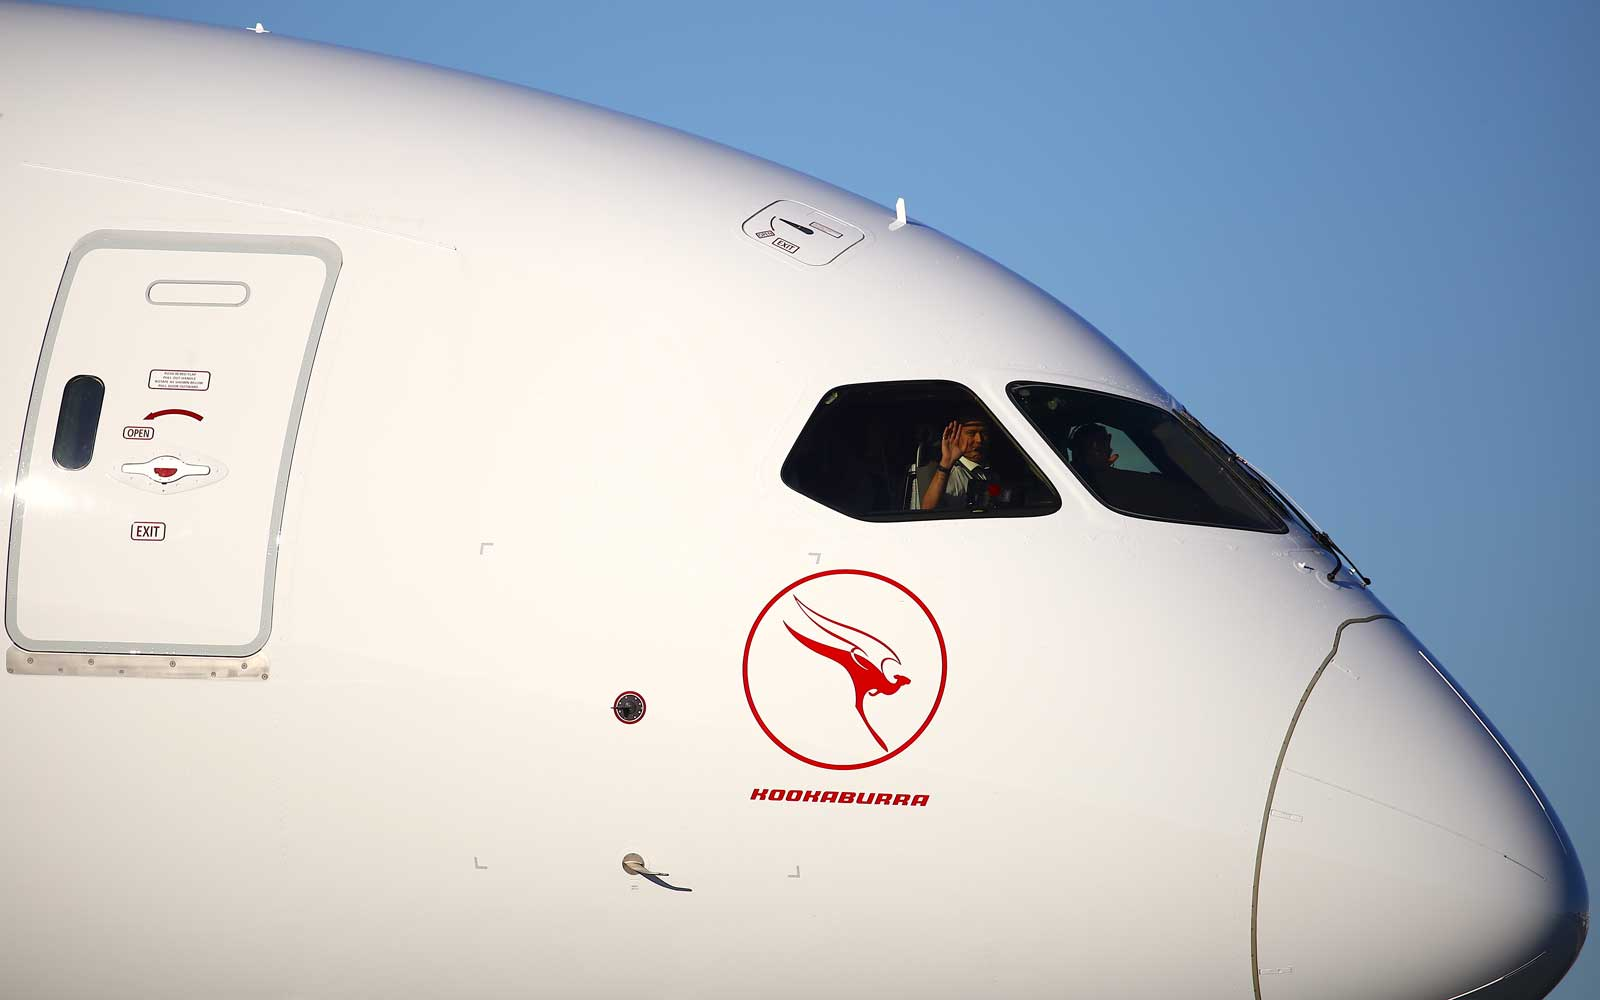 Qantas sets record with nearly 20-hour commercial flight from New York to Sydney